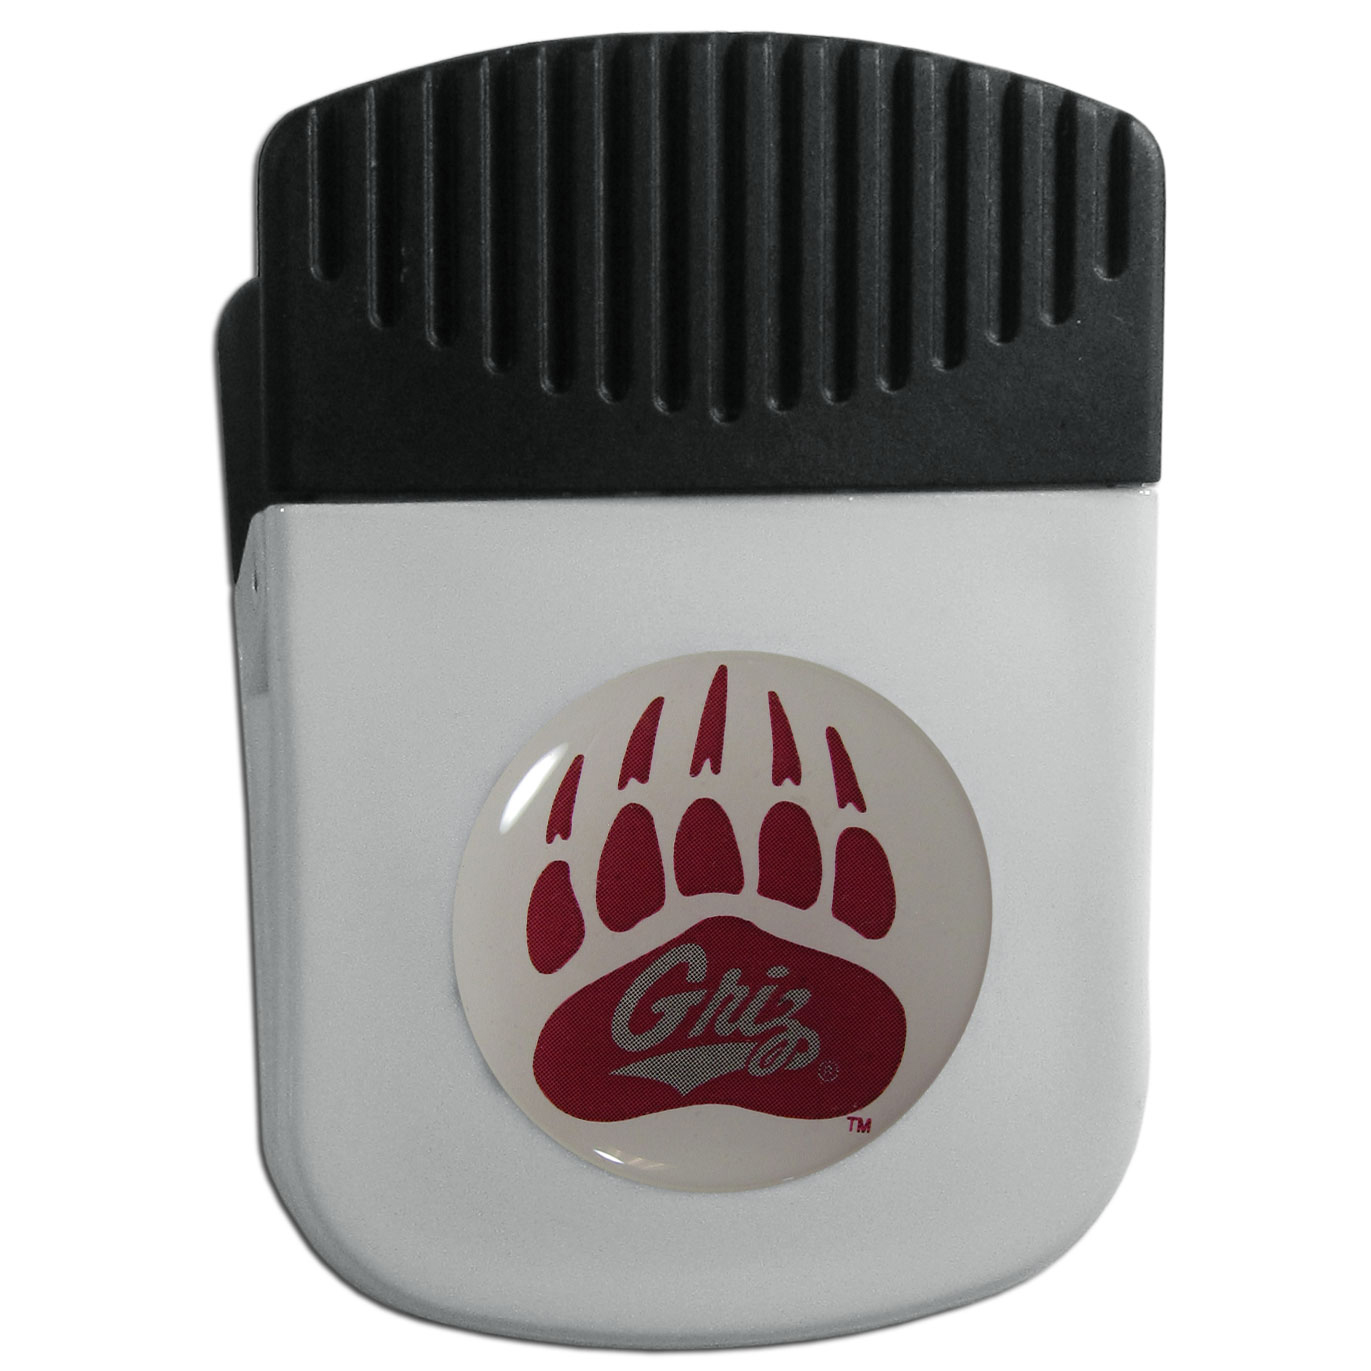 Montana Grizzlies Chip Clip Magnet - Use this attractive clip magnet to hold memos, photos or appointment cards on the fridge or take it down keep use it to clip bags shut. The magnet features a domed Montana Grizzlies logo.